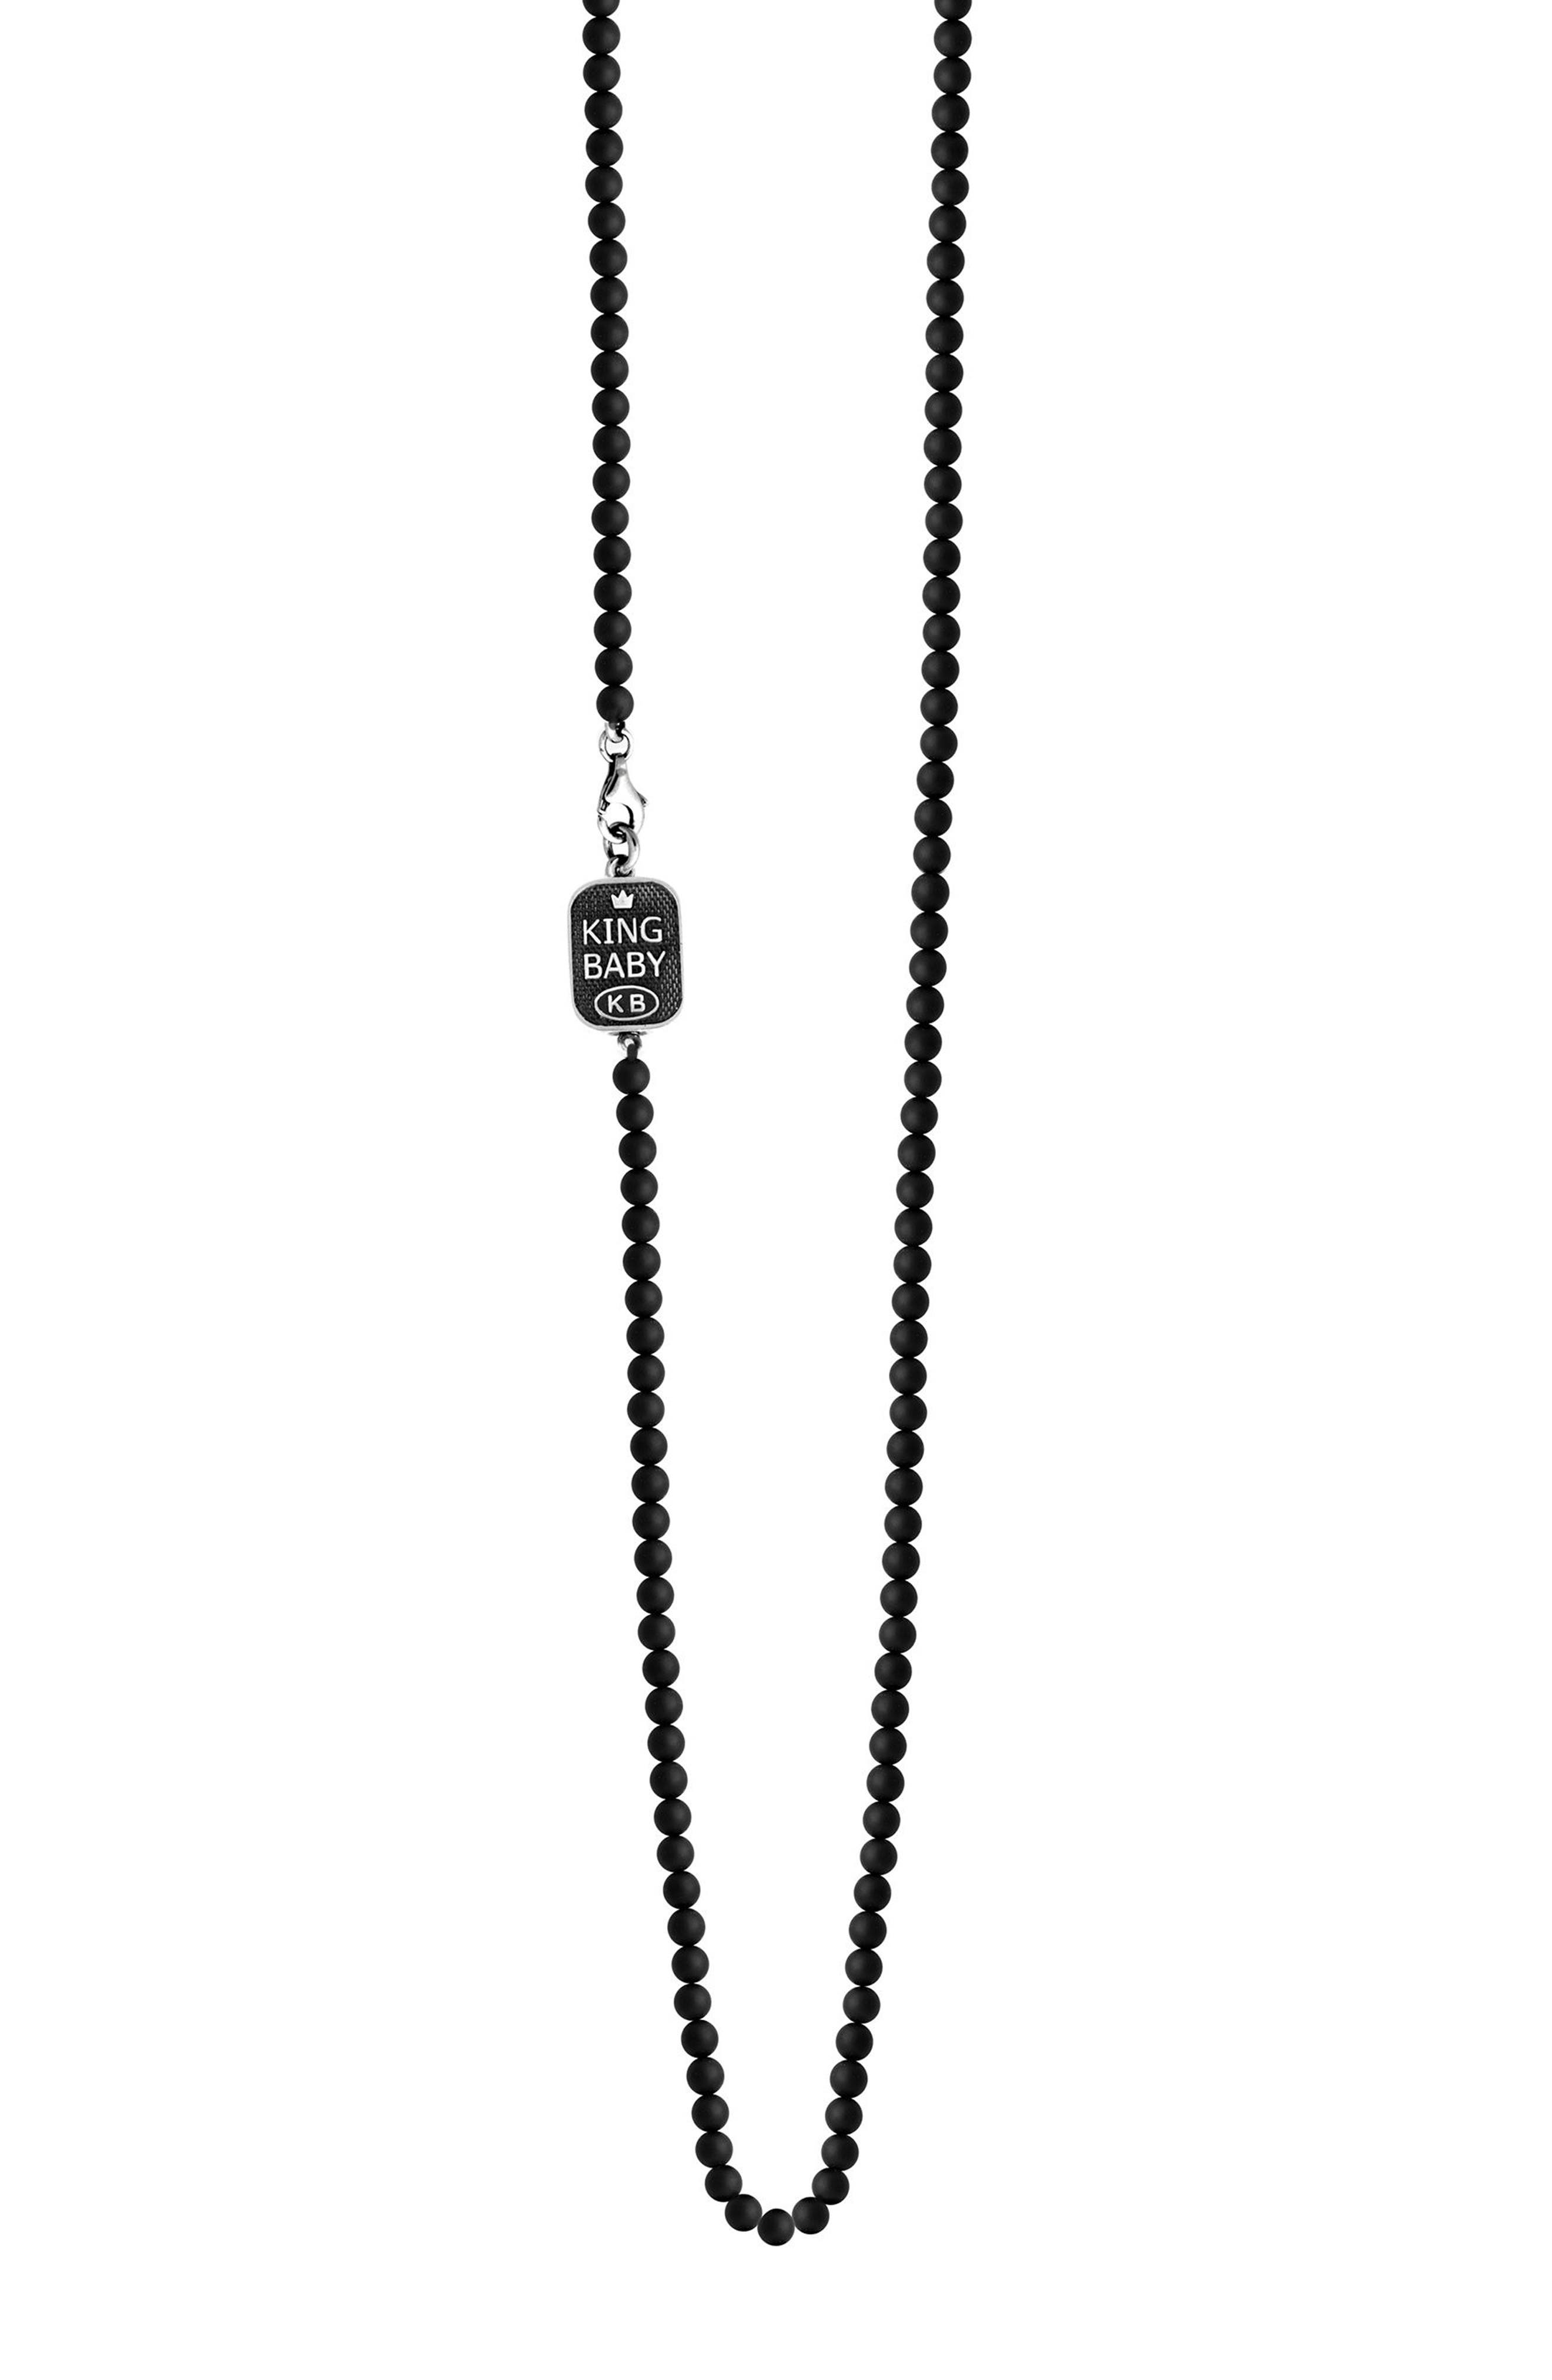 Onyx Bead Necklace,                             Main thumbnail 1, color,                             Black